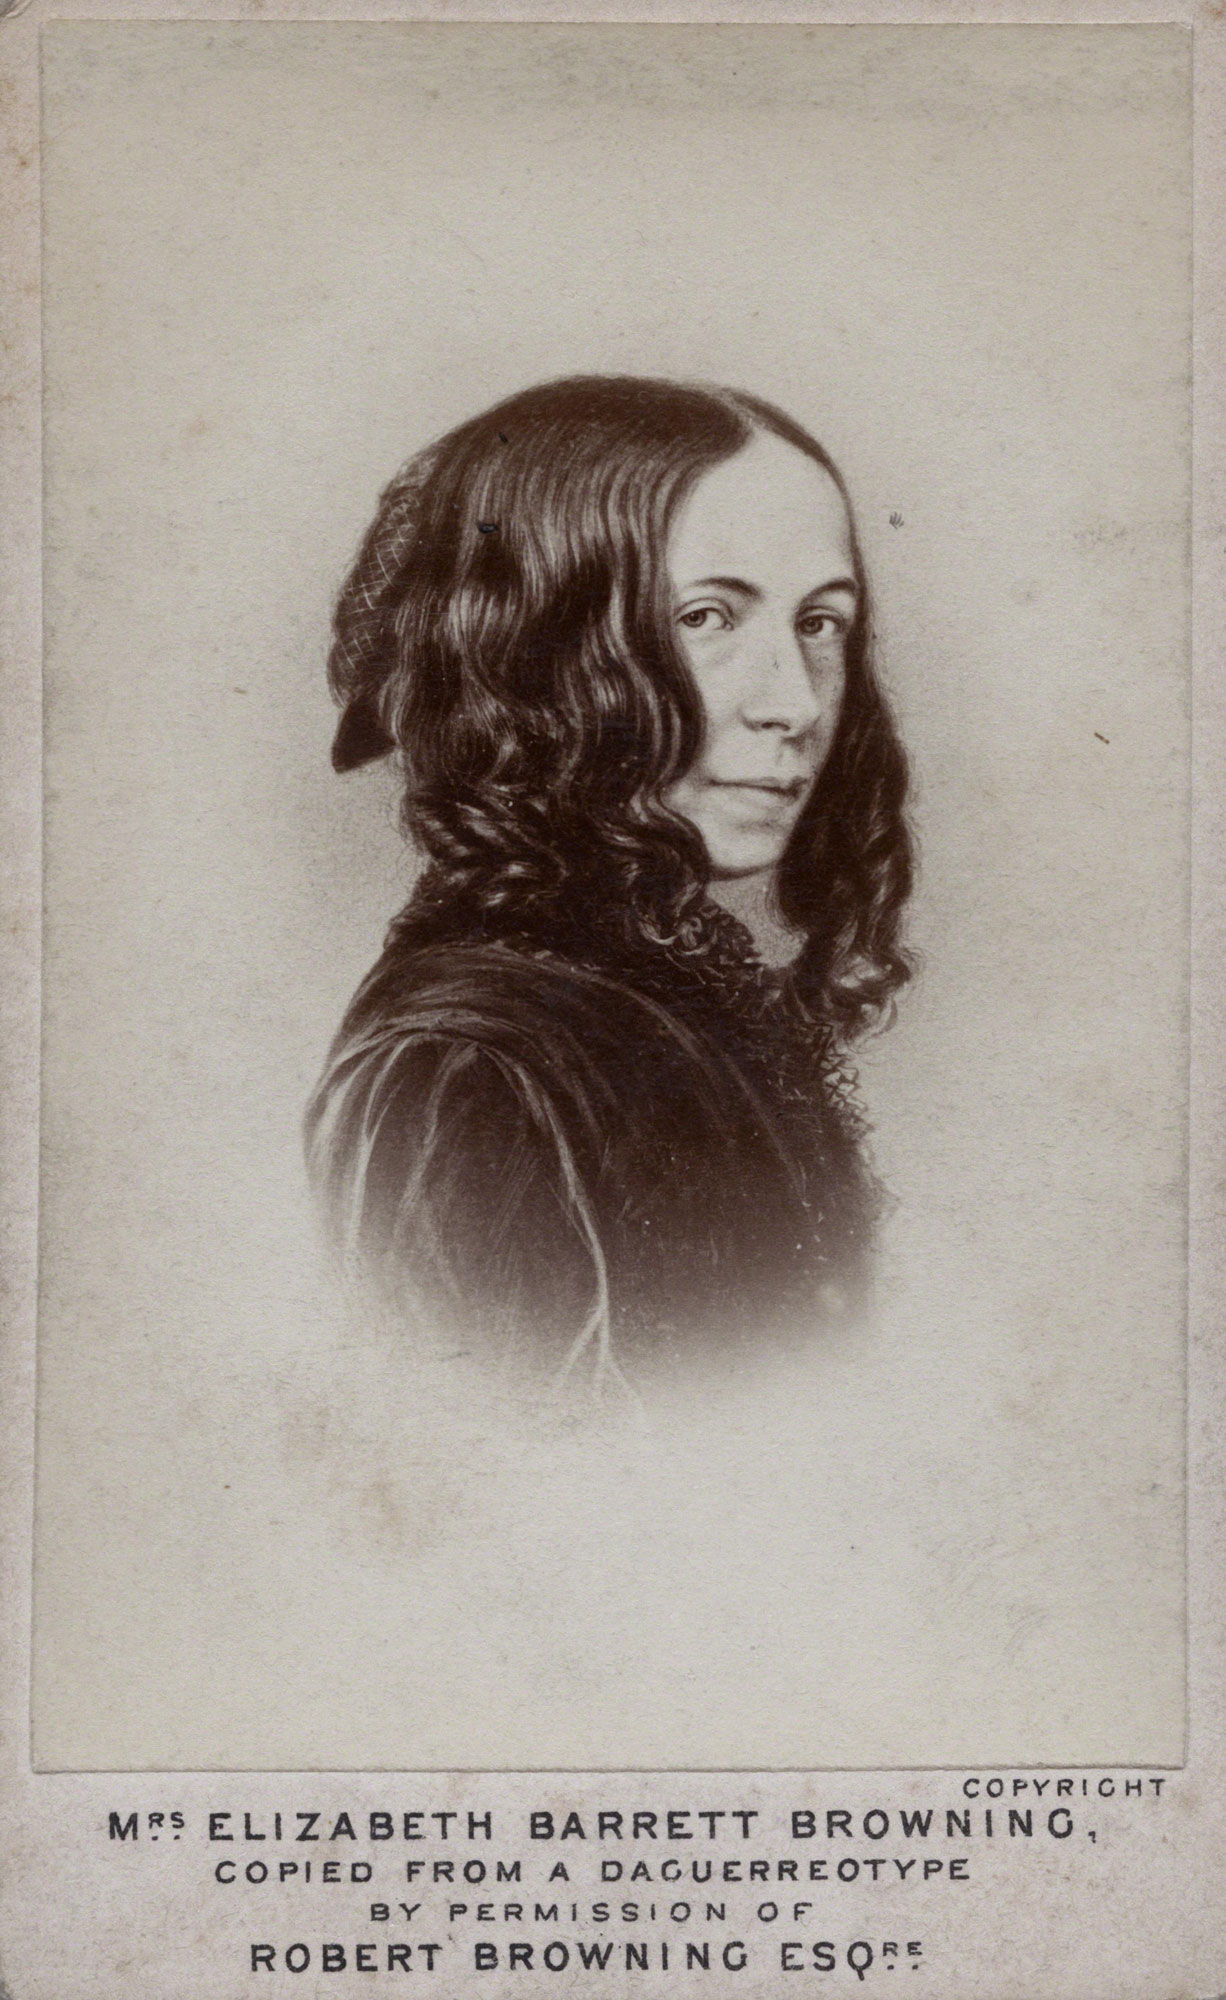 Elizabeth Barrett Browning, author of Sonnets from the Portuguese and Aurora Leigh. Portrait by Elliott & Fry © National Portrait Gallery, London.